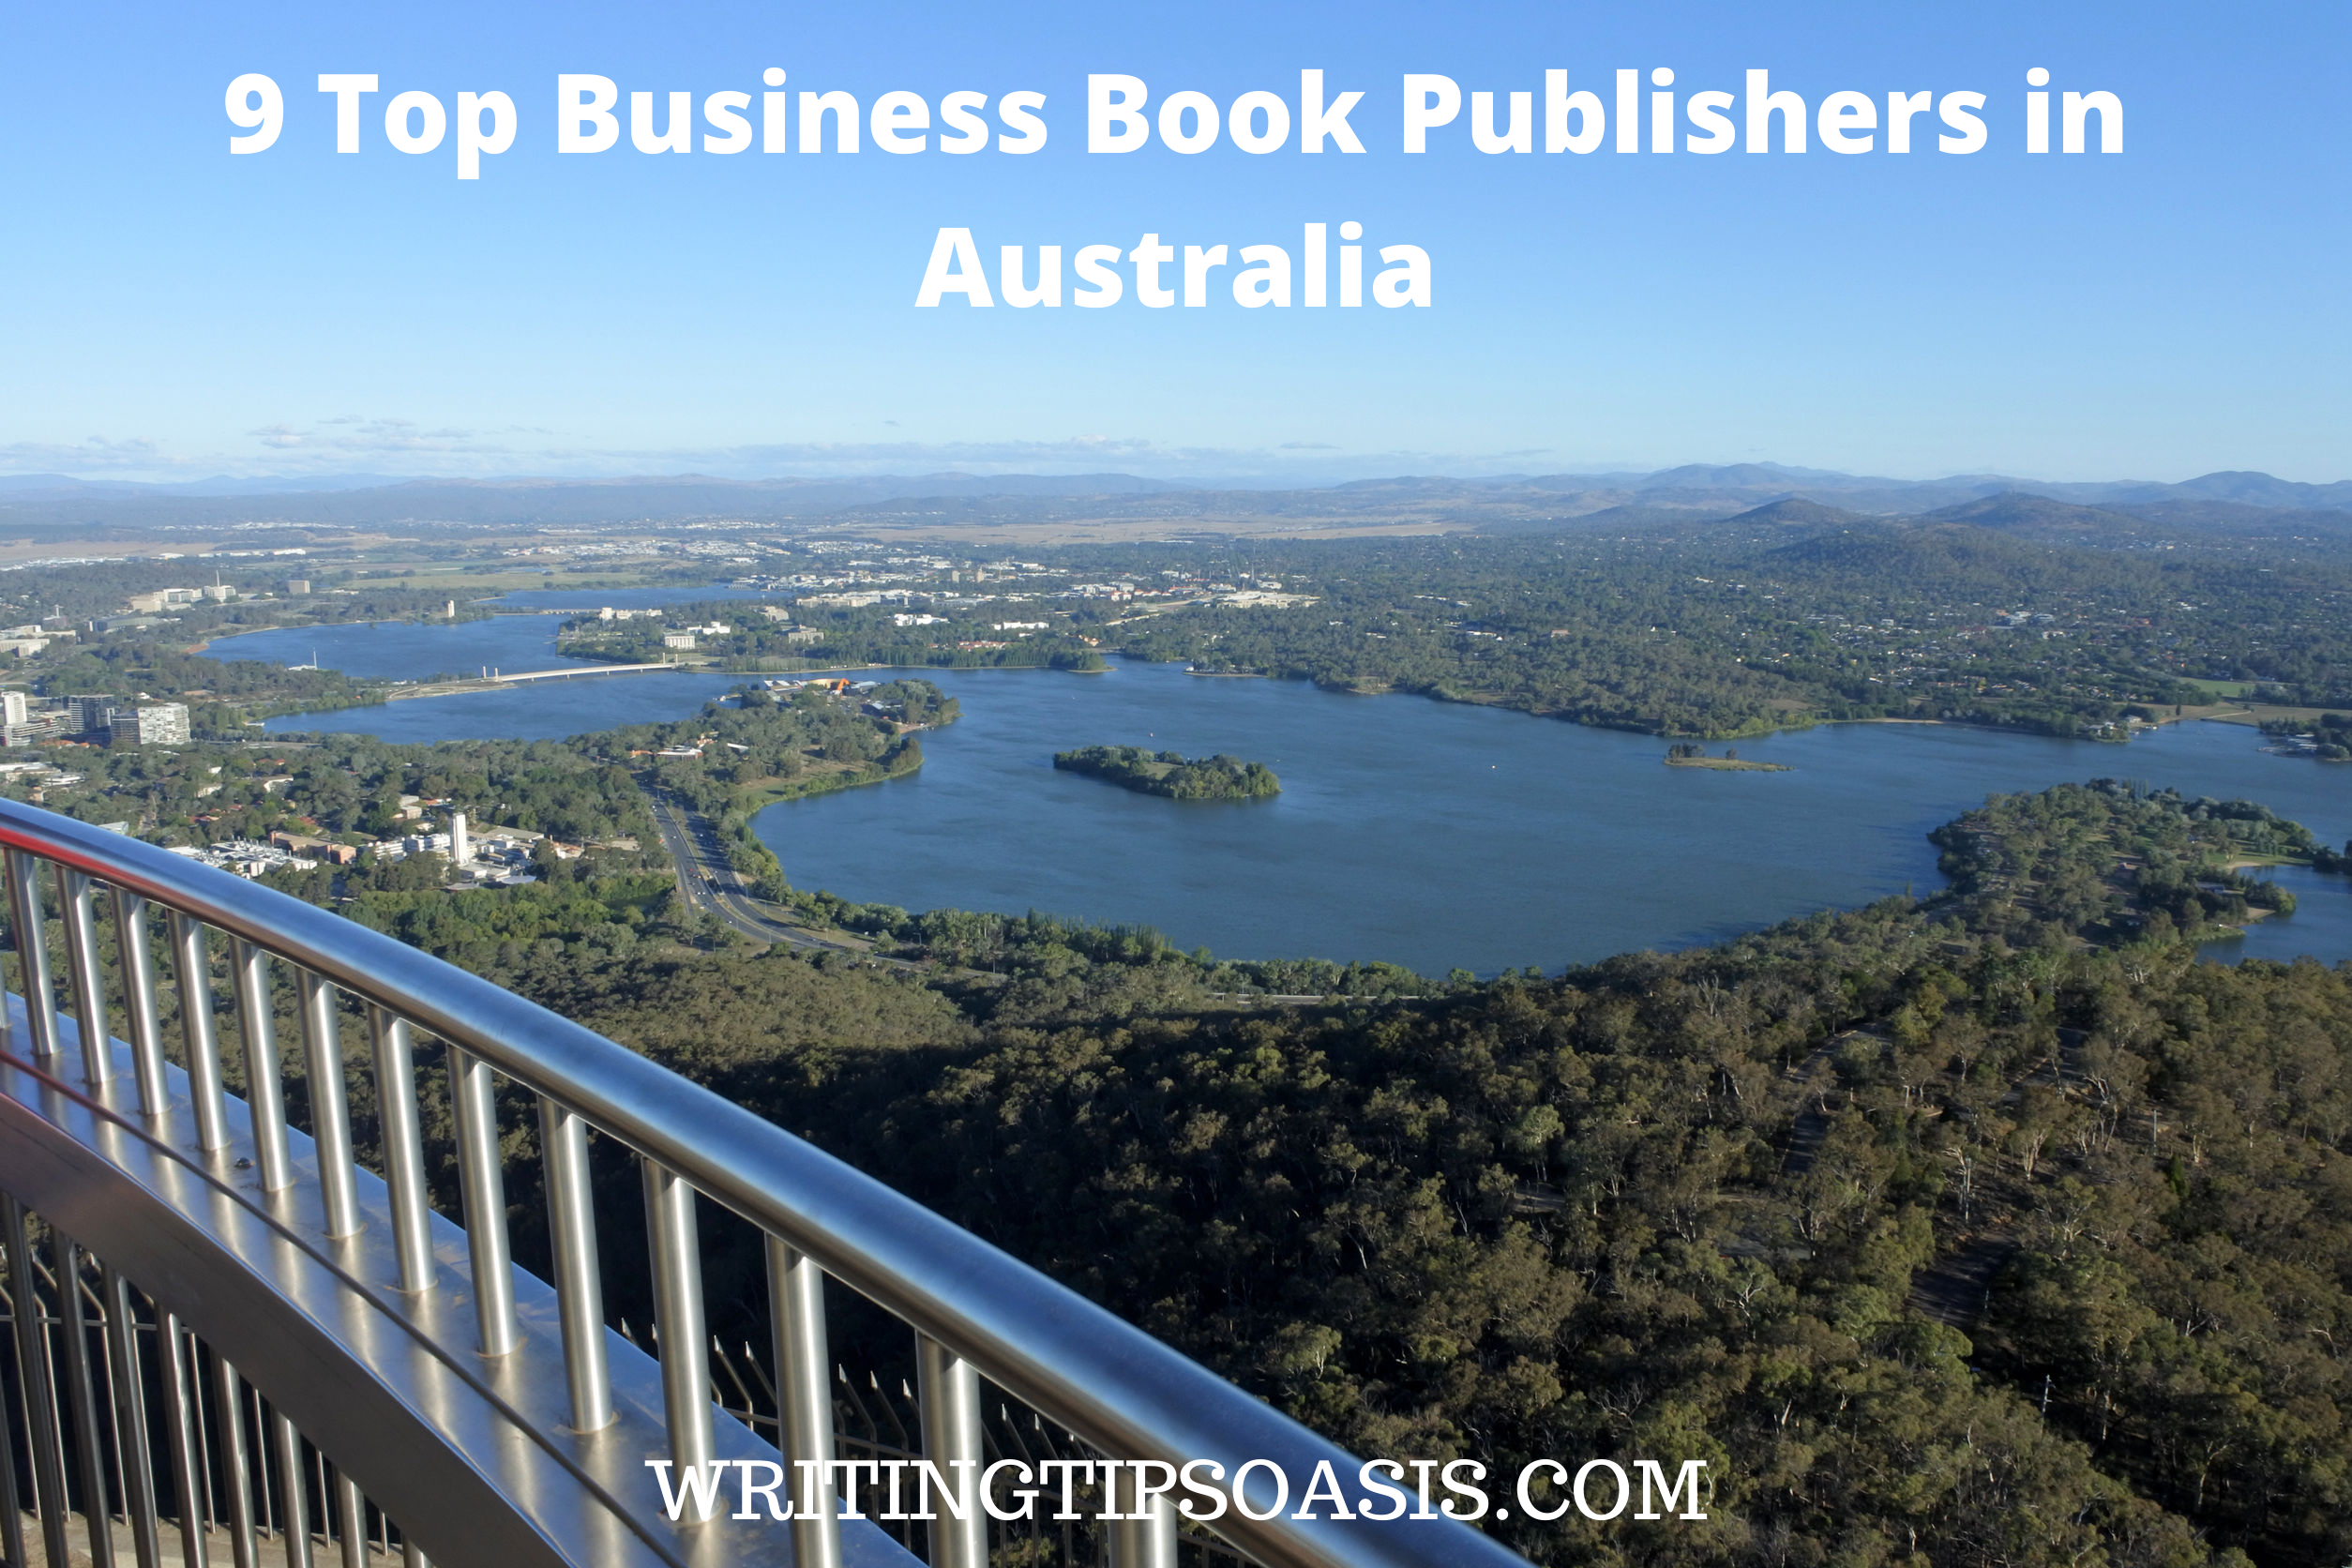 Business Book Publishers in Australia